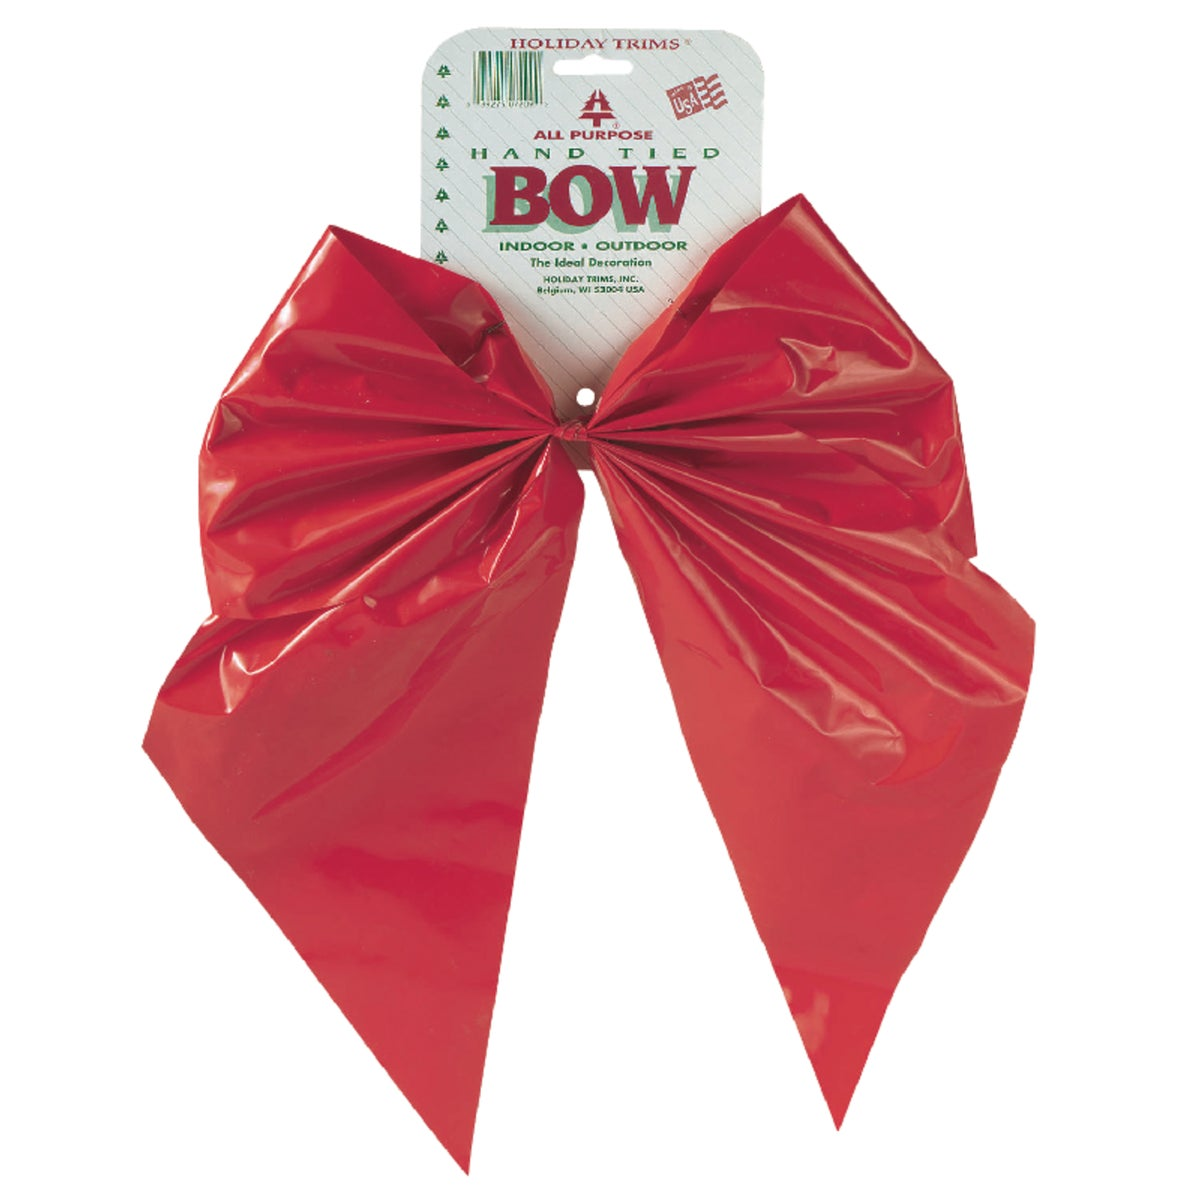 11X16 RED PLASIC BOW - 7209 by Holiday Trims Inc